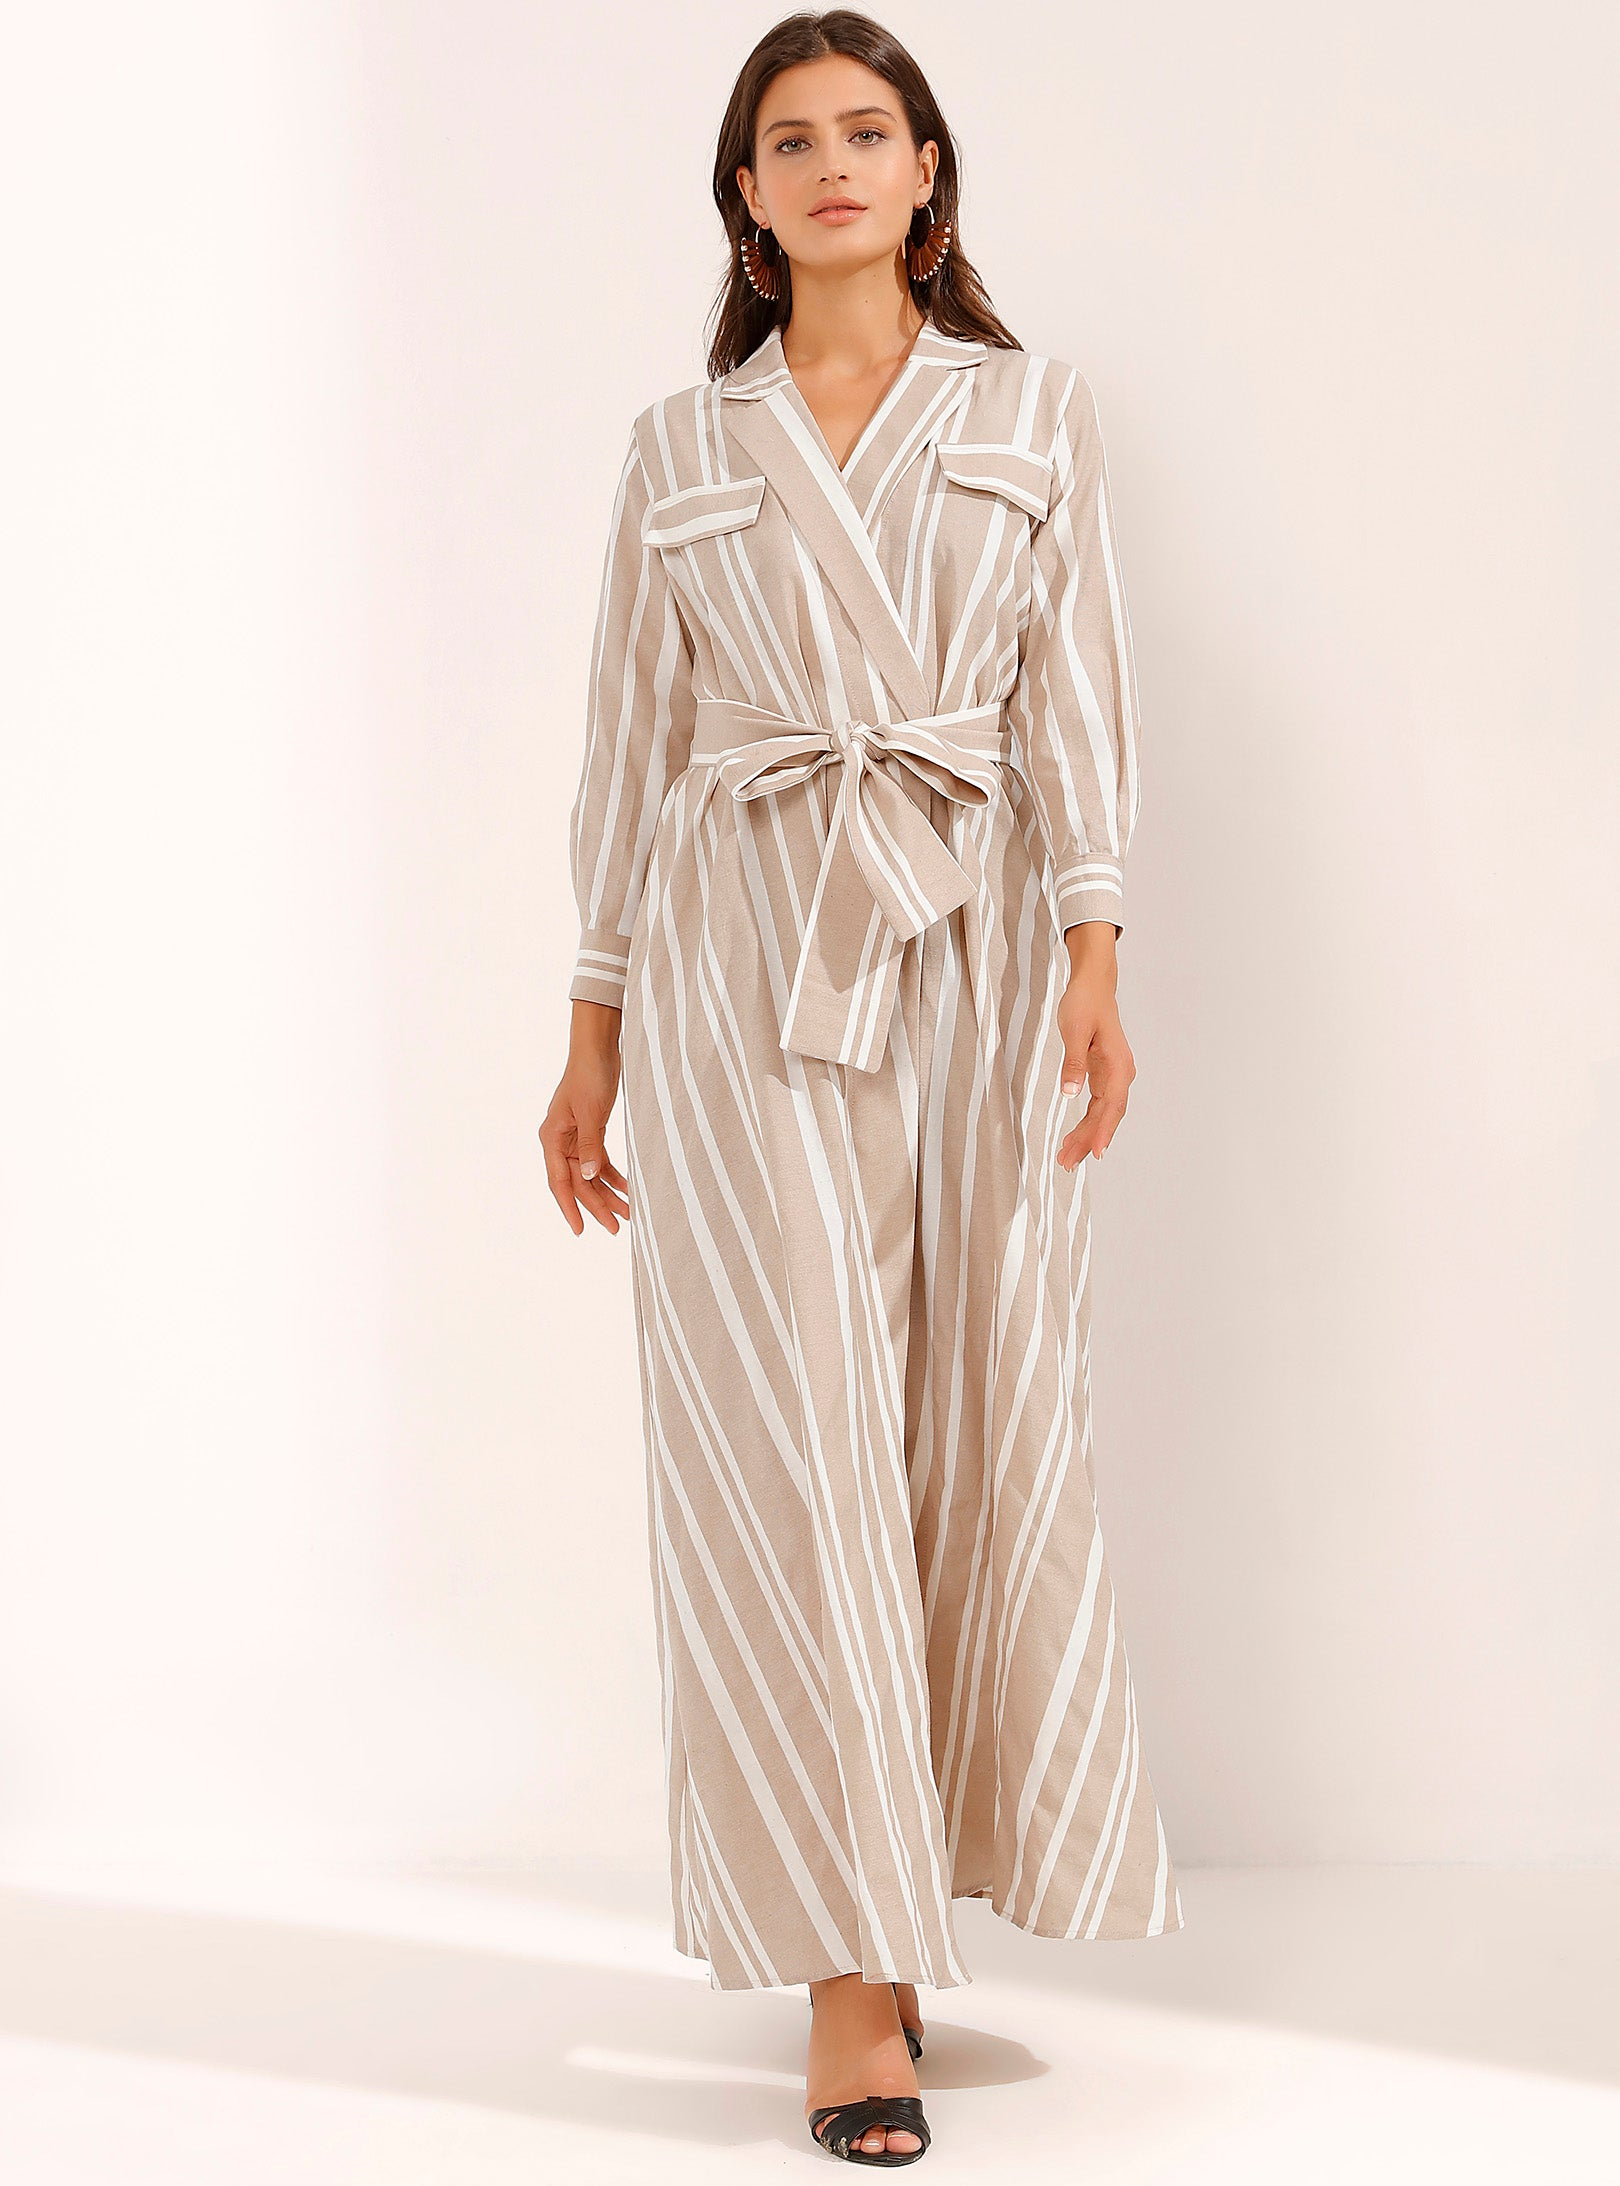 Cream & Beige Striped V-Neck Maxi Dress with Waistband - Store WF